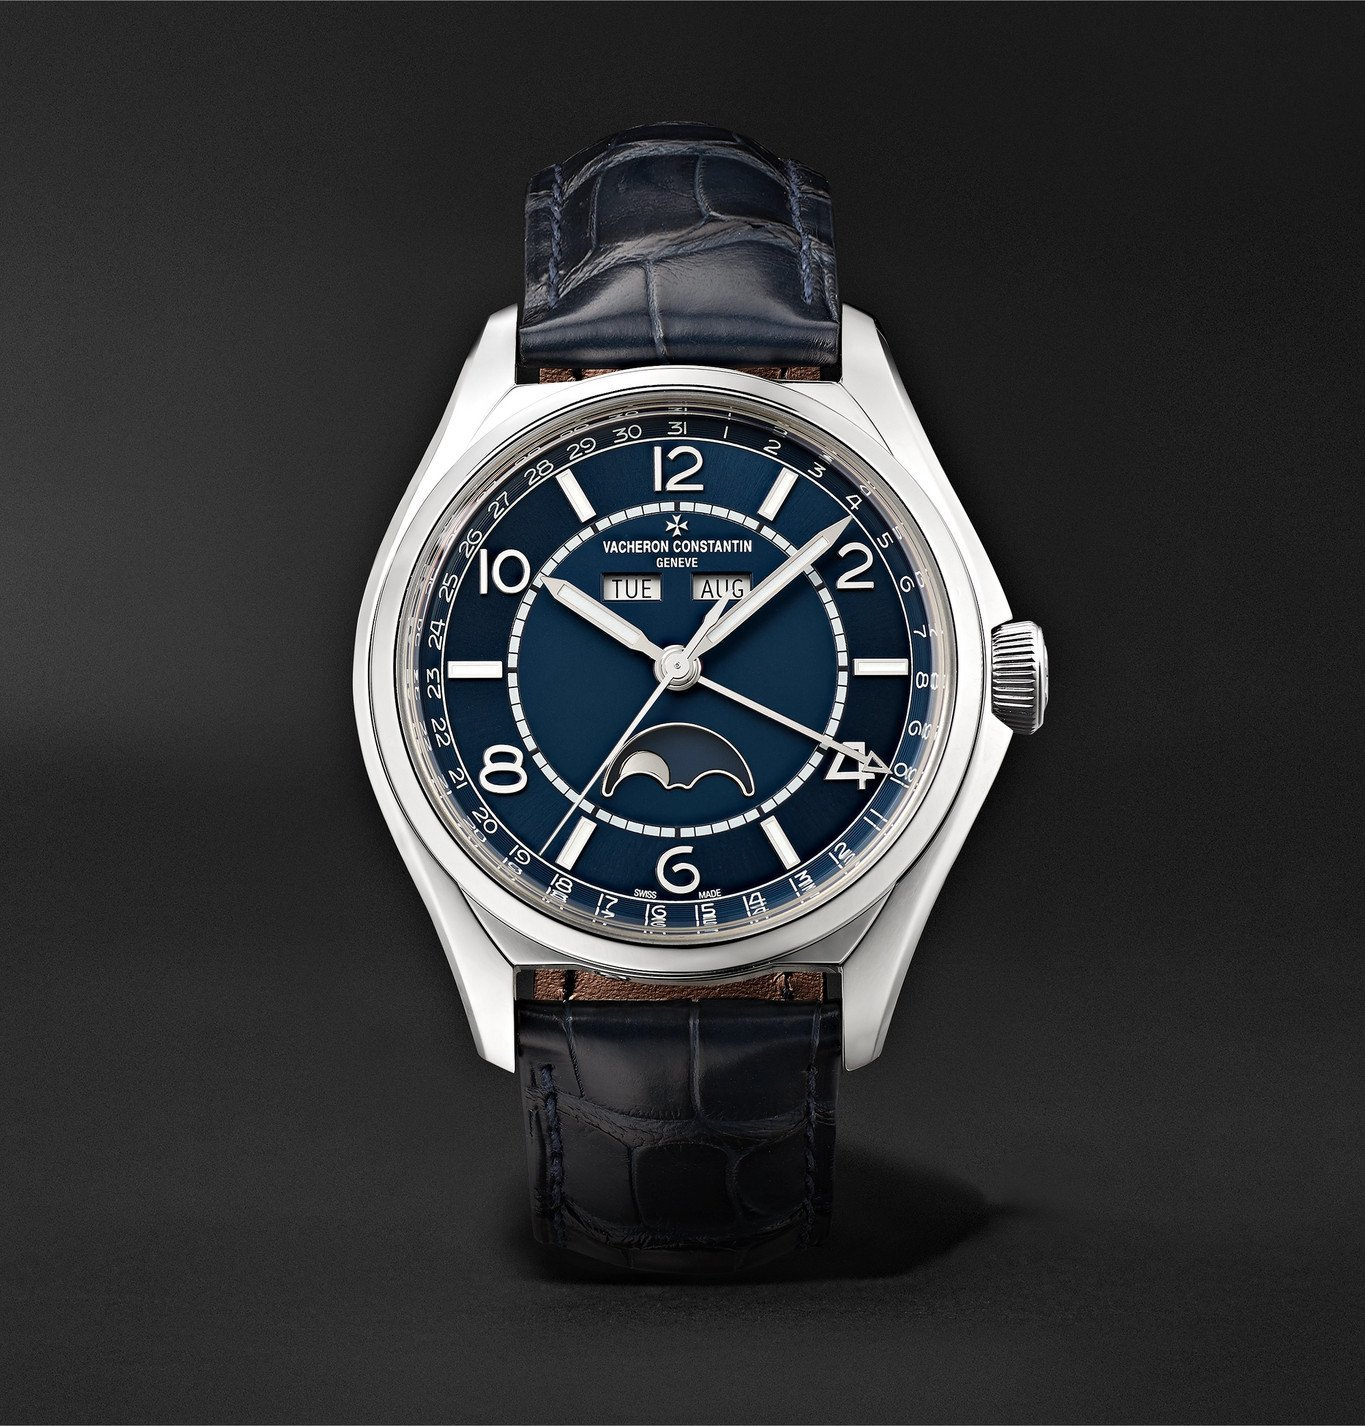 Photo: Vacheron Constantin - Fiftysix Automatic Complete Calendar 40mm Stainless Steel and Alligator Watch, Ref. No. 4000E/000A-B548 - Blue